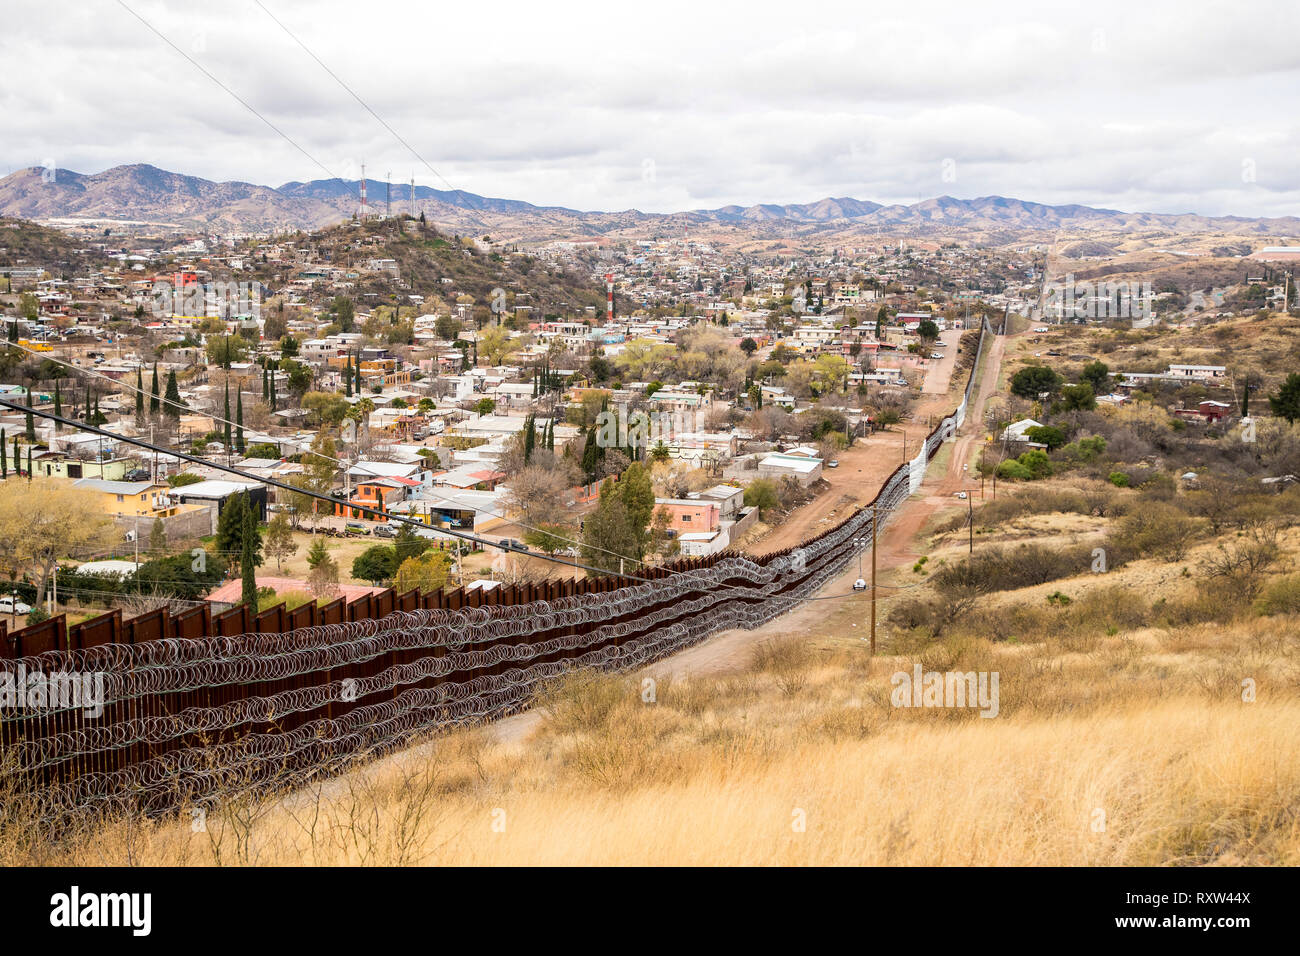 US-Mexico international border: Layers of Concertina are added to existing barrier infrastructure along the U.S. - Mexico border near Nogales, AZ, on February 4, 2019. See more information below. Stock Photo